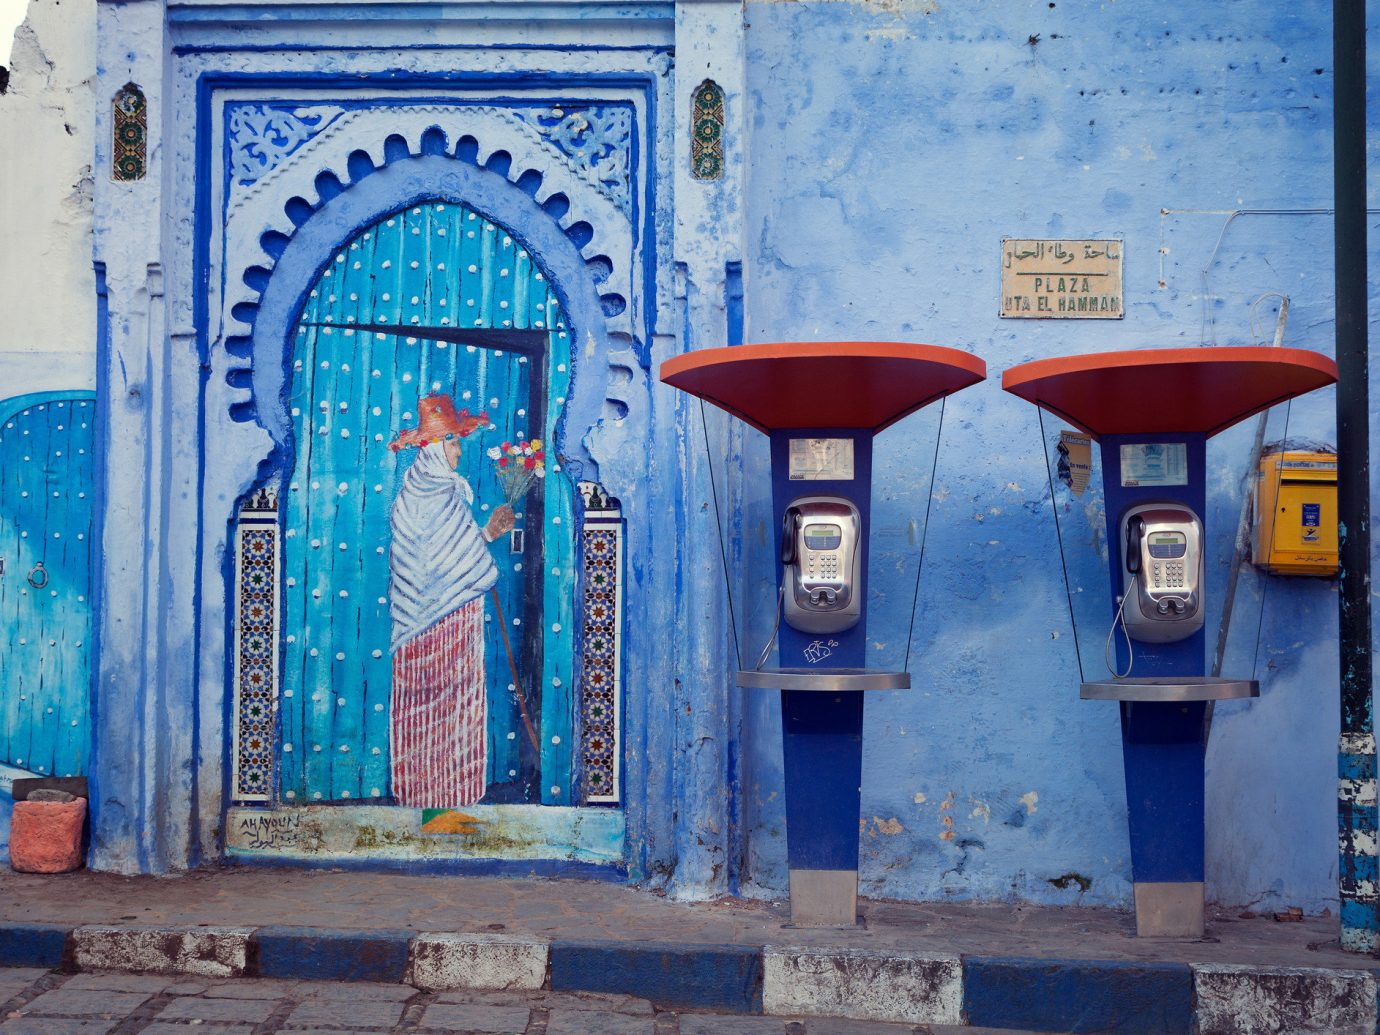 Offbeat color blue outdoor urban area wall Architecture art facade ancient history window temple shrine